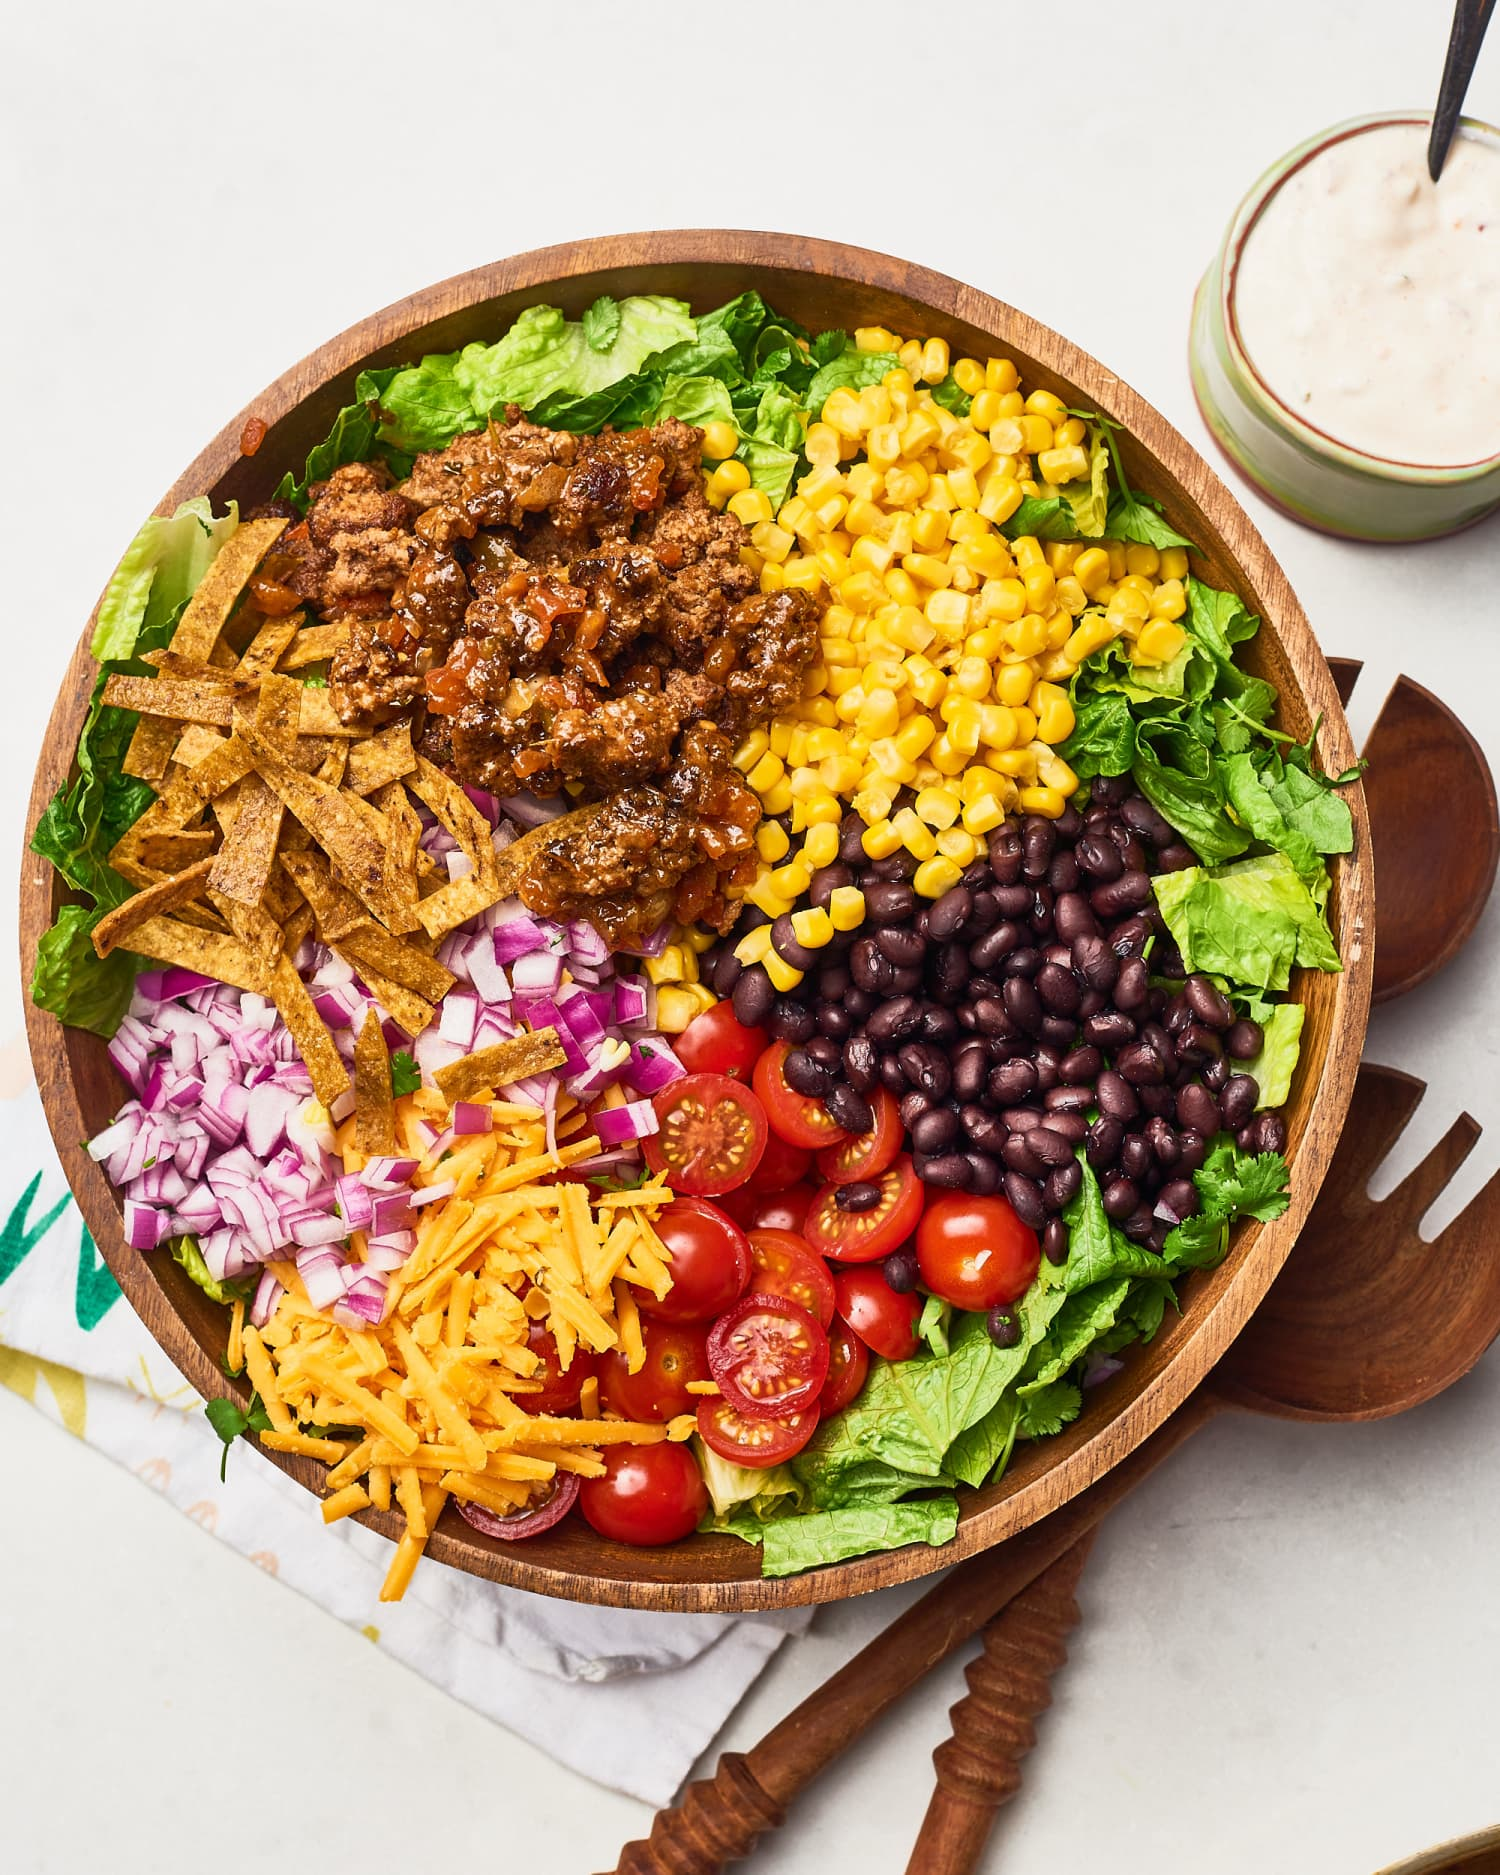 How To Make the Best Restaurant-Quality Taco Salad at Home